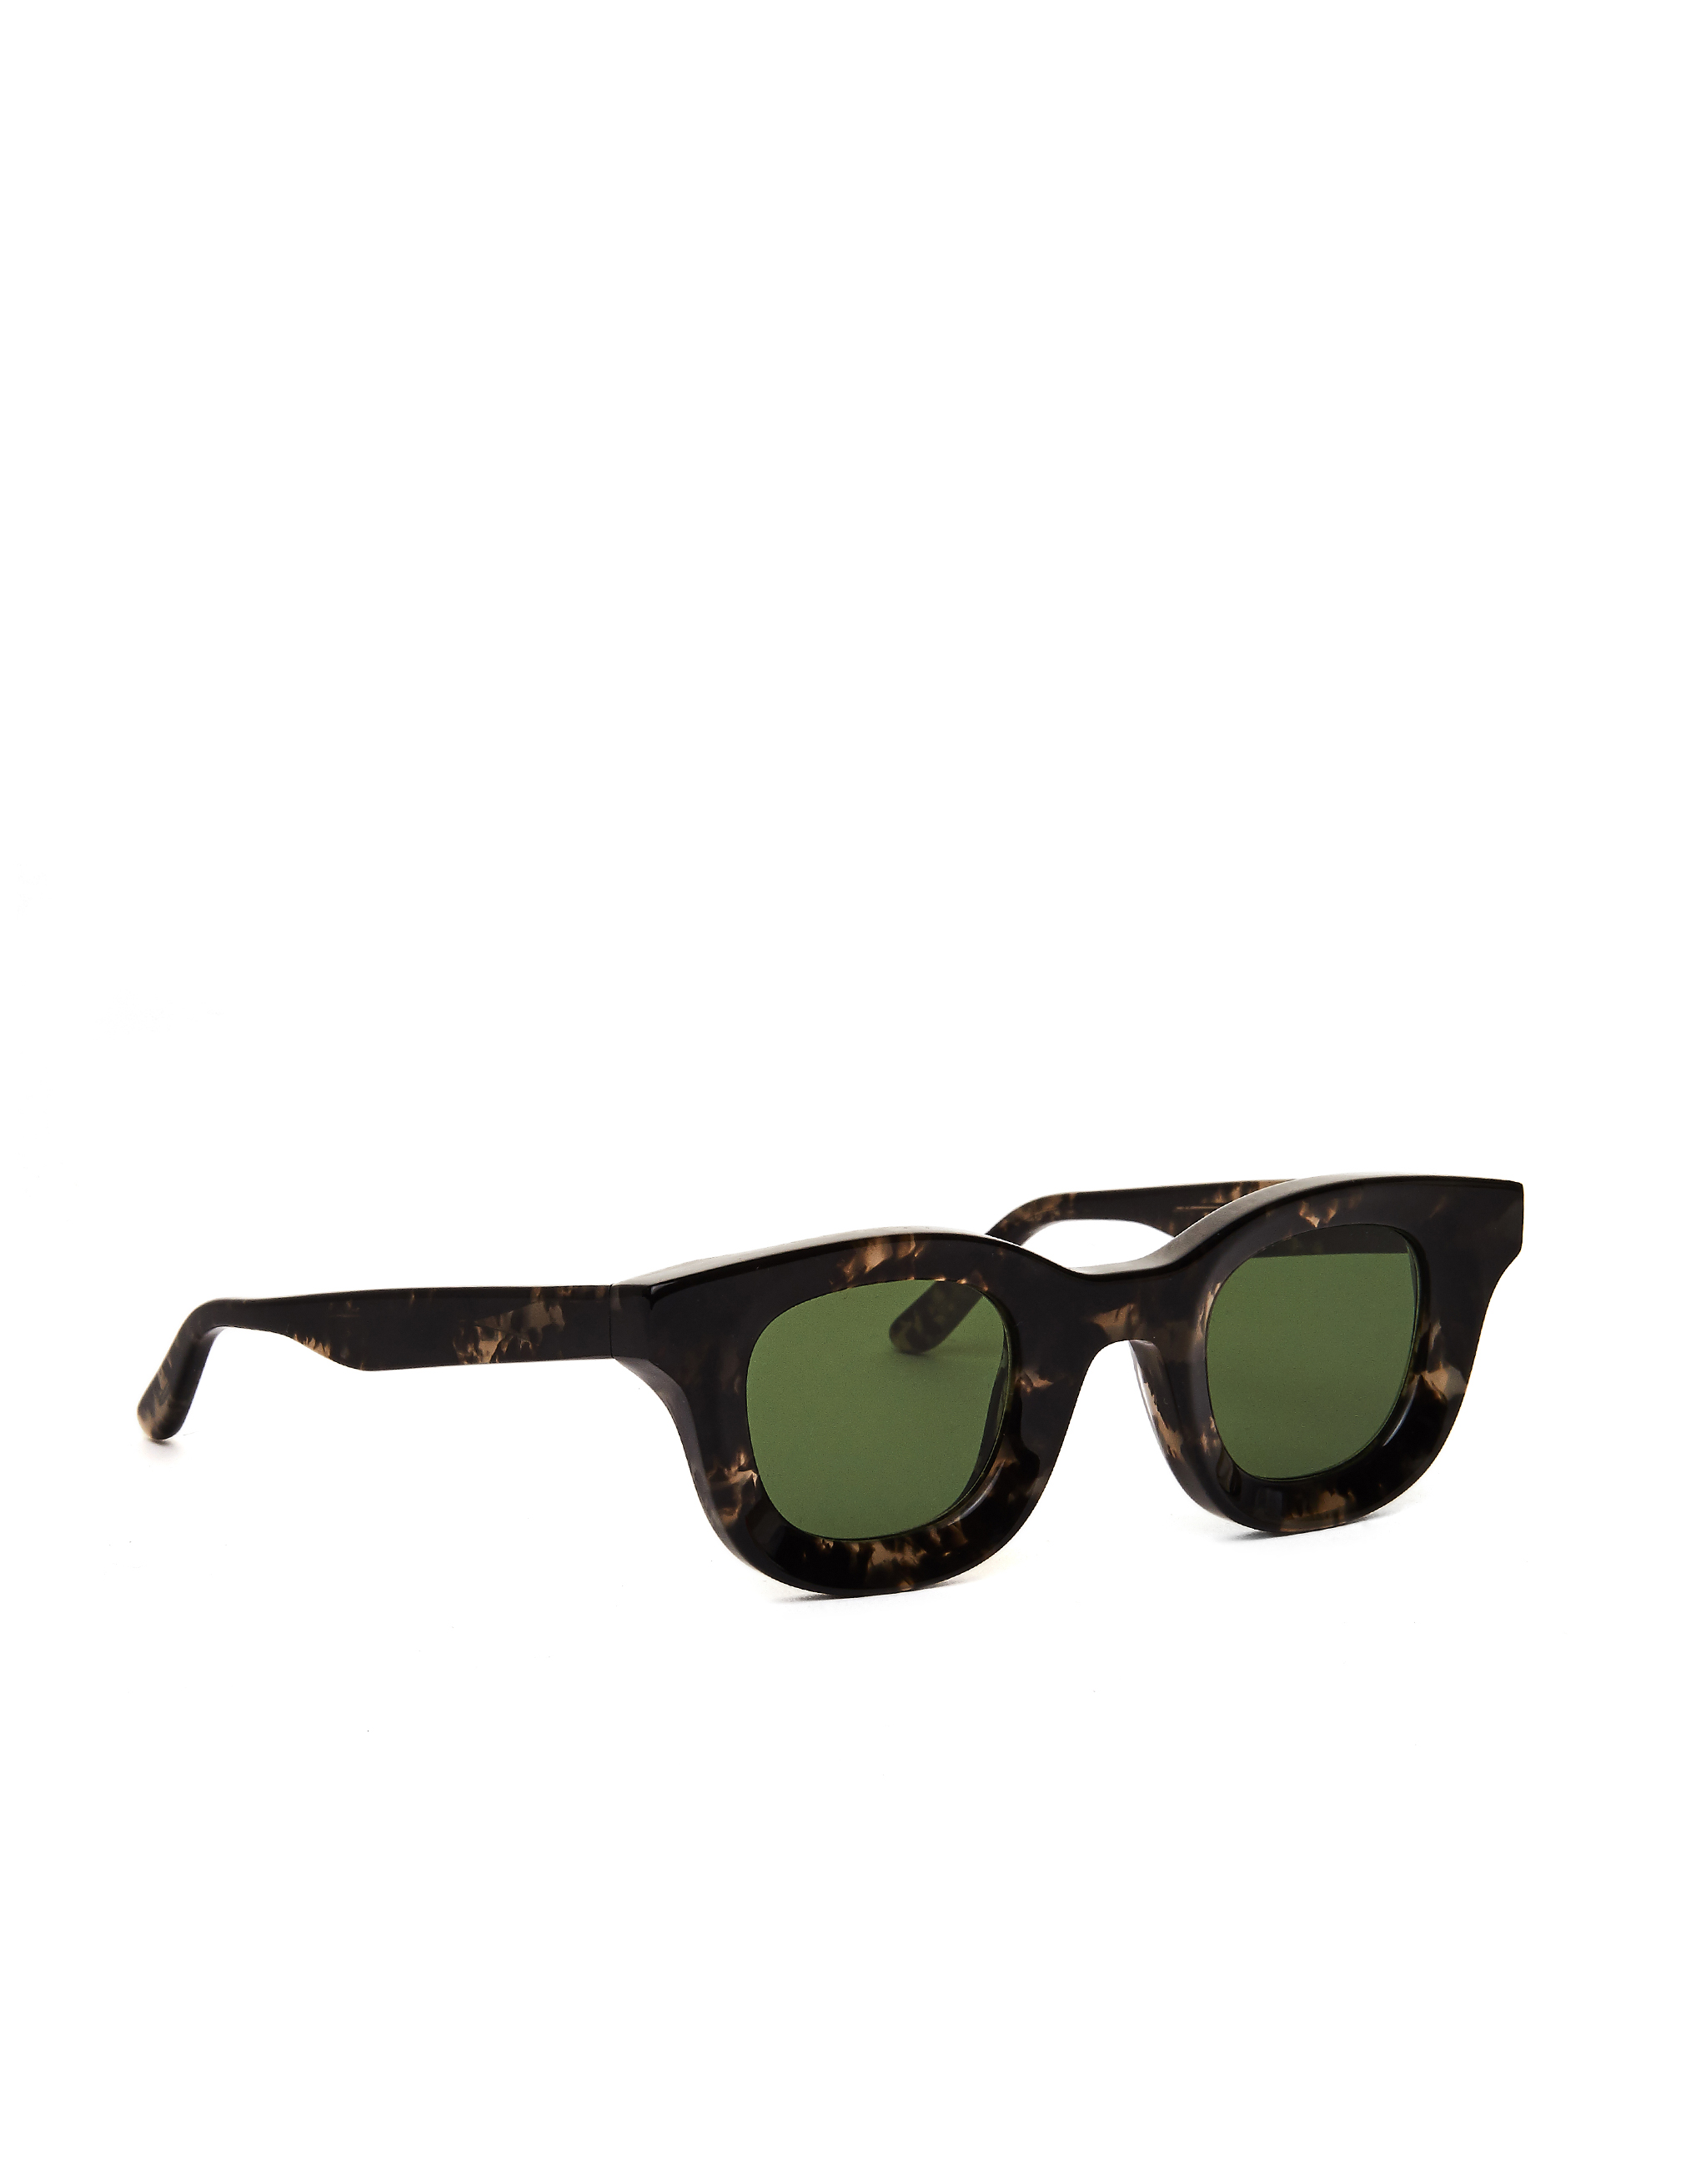 Thierry Lasry Thierry Lasry x Rhude Green 'Rhodeo' Sunglasses